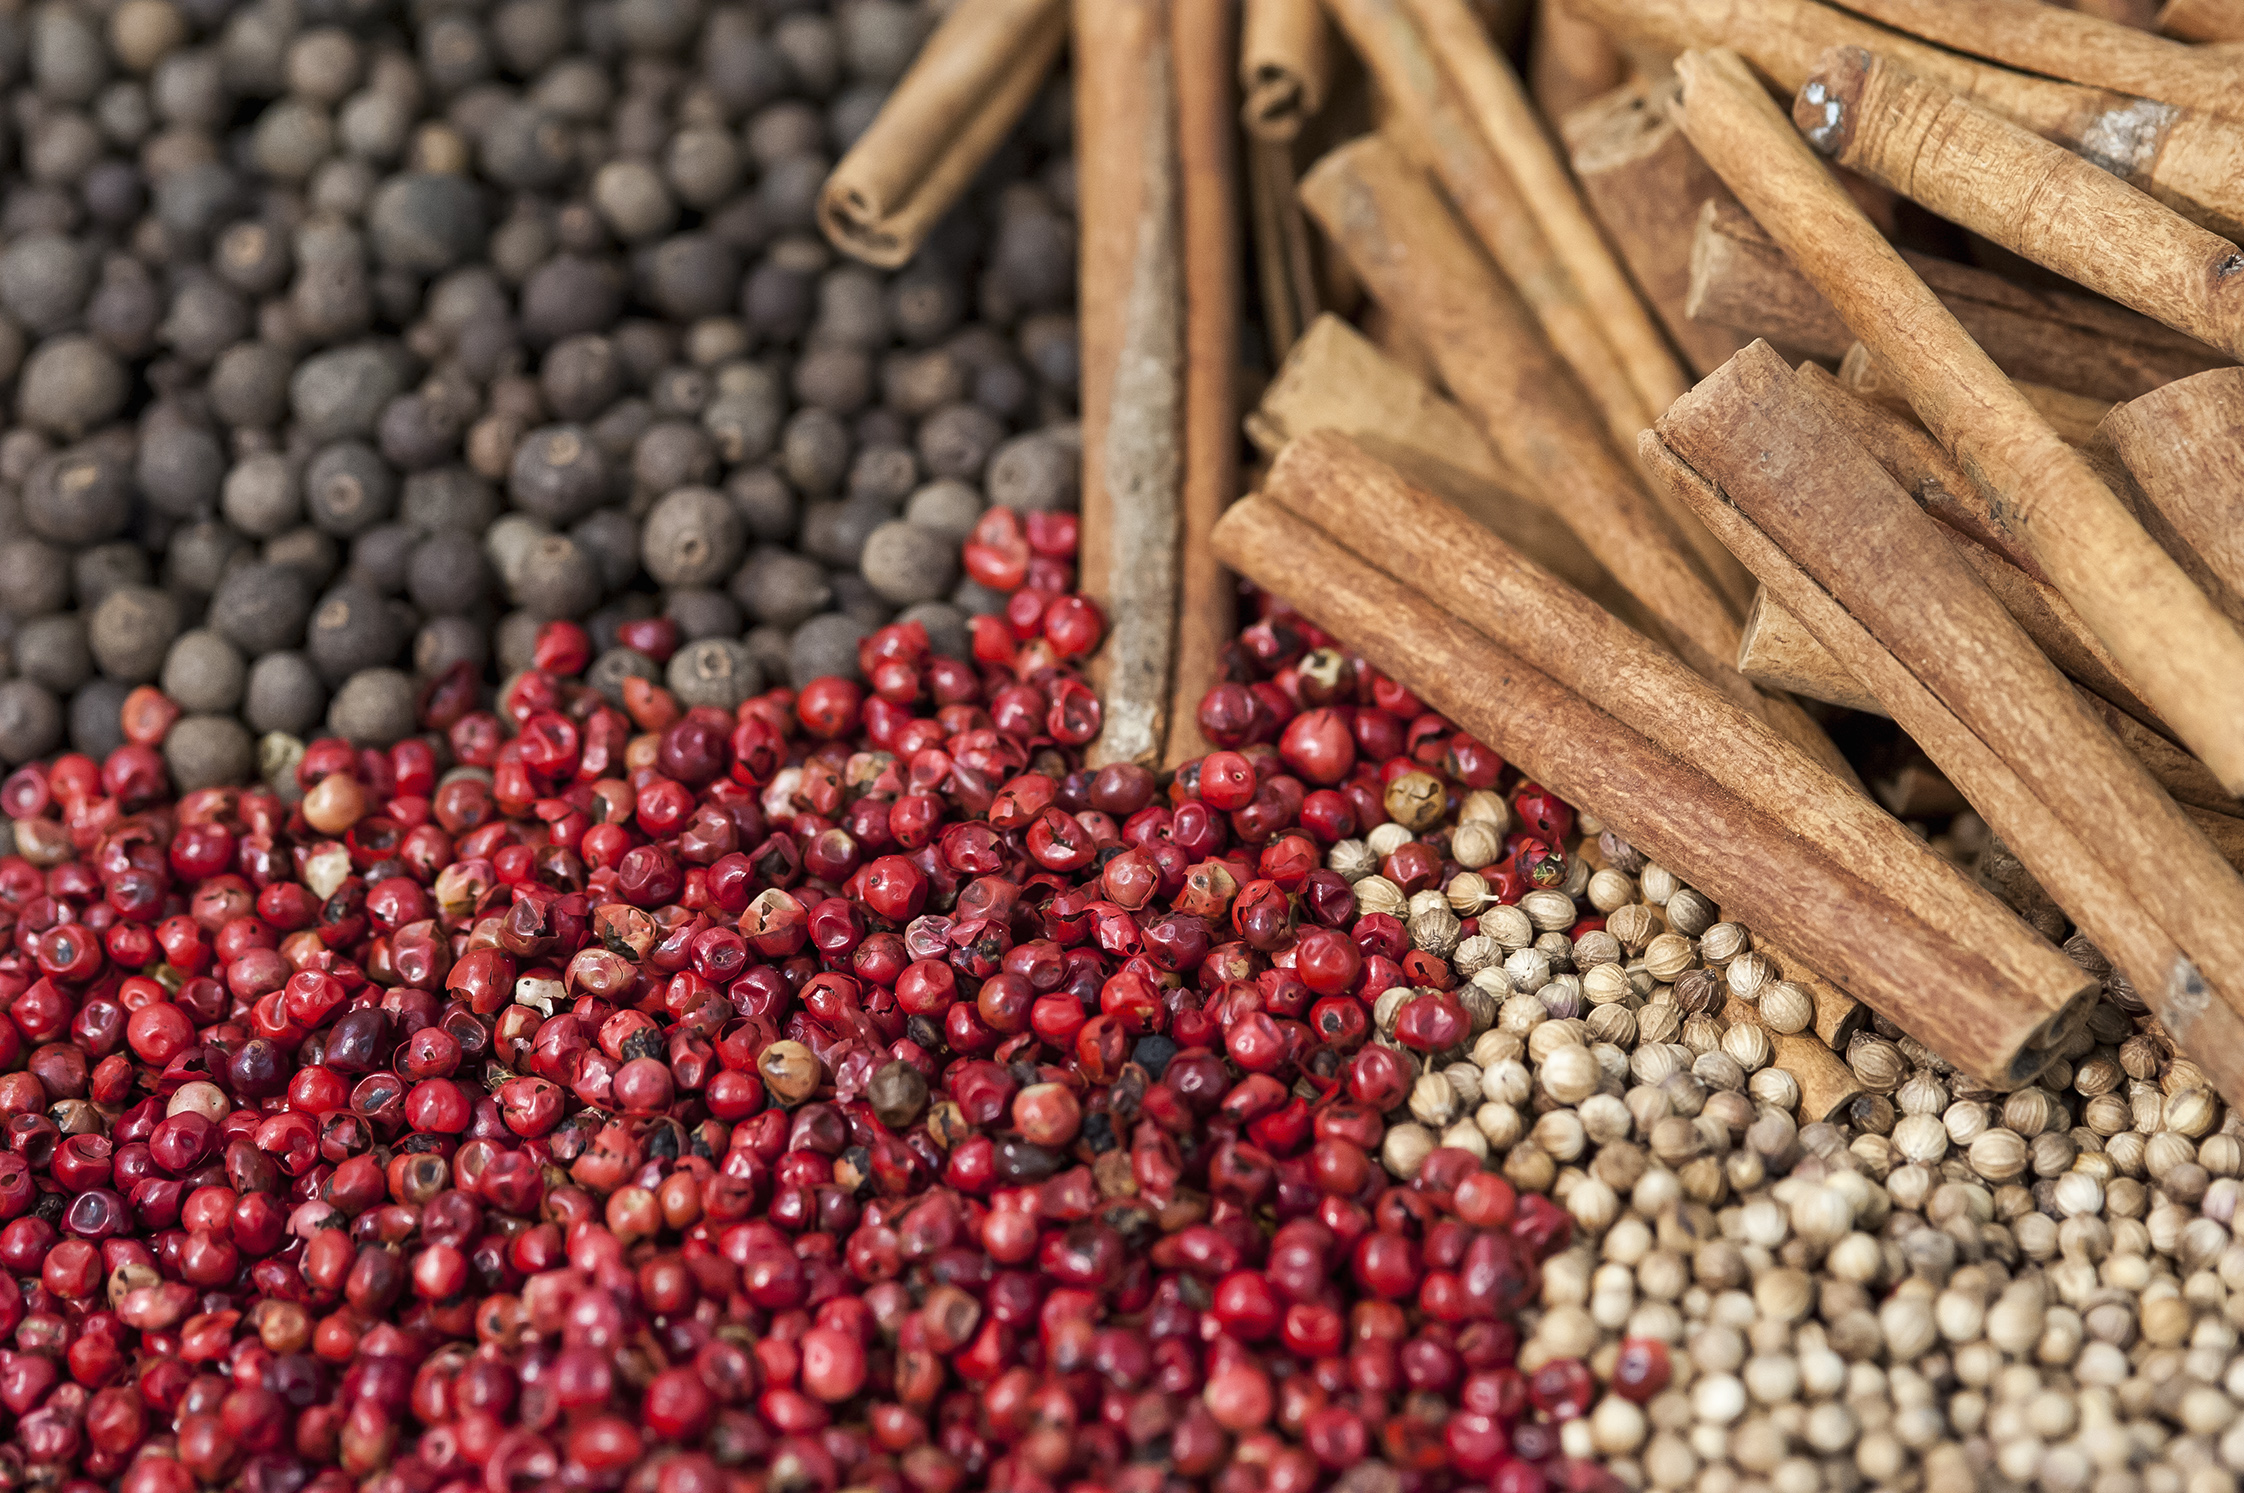 Ingredients, spices and herbs, auxiliary products, casings